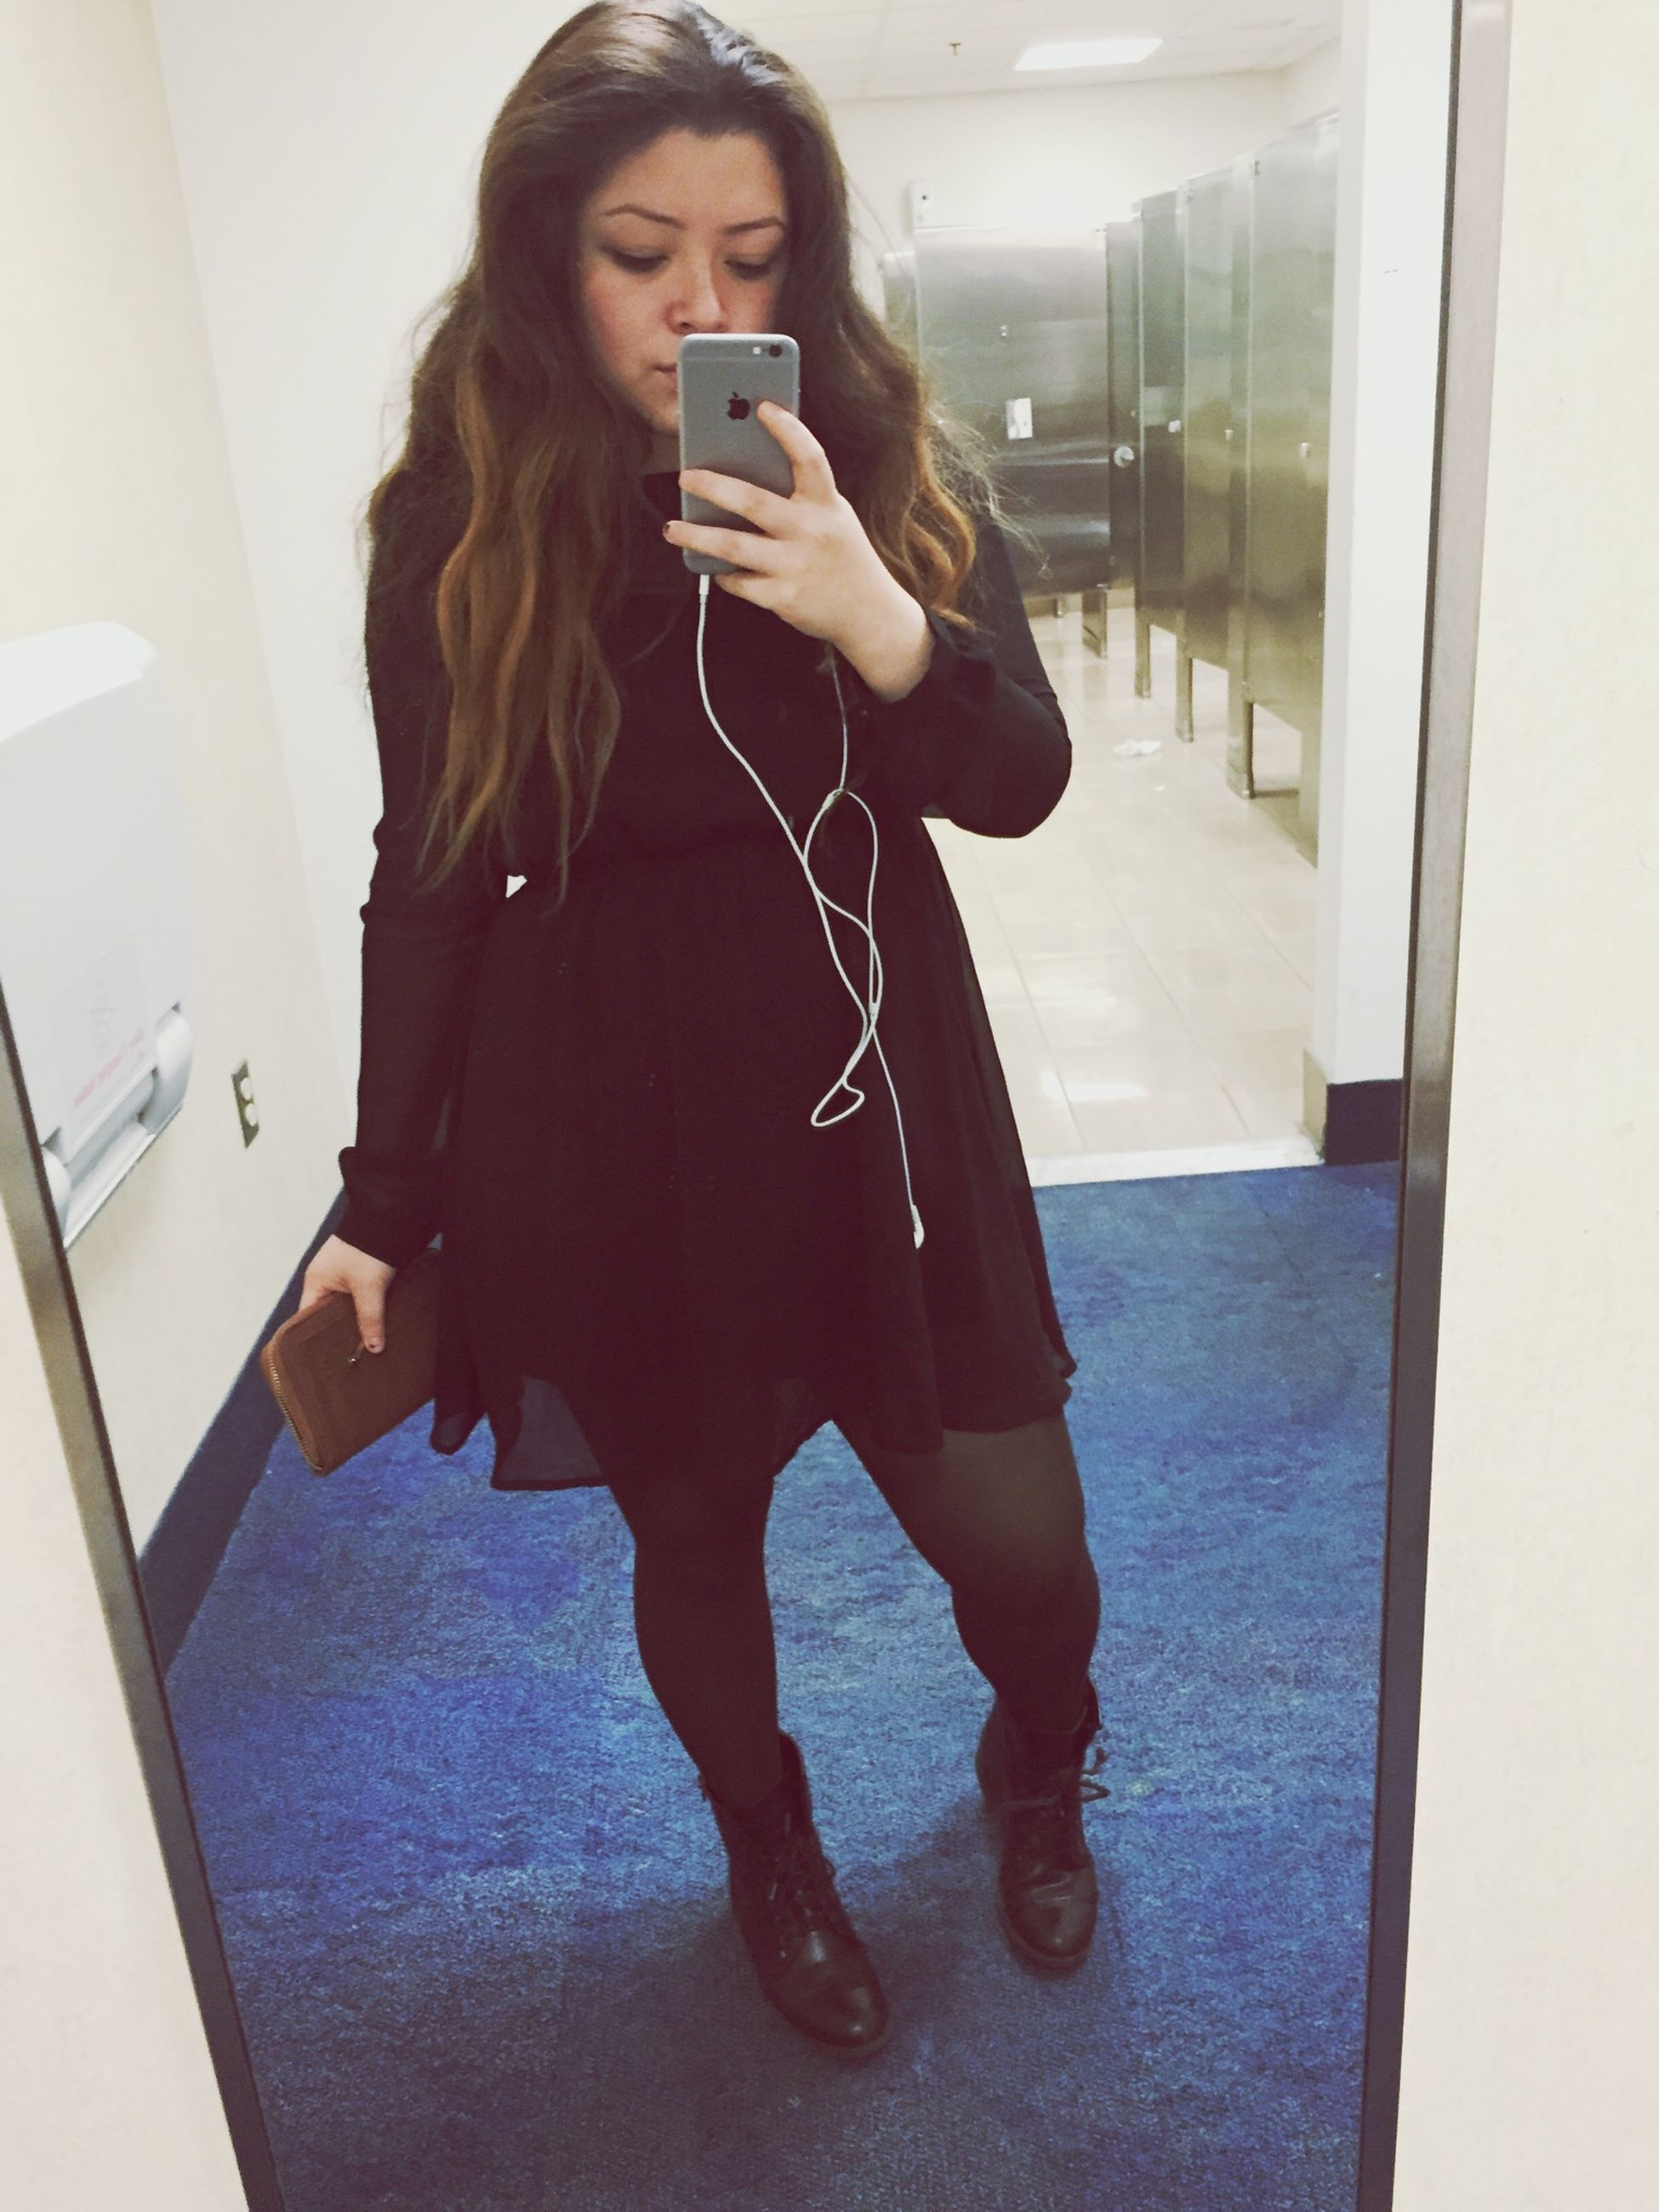 young adult, indoors, lifestyles, young women, leisure activity, person, casual clothing, front view, standing, full length, home interior, technology, three quarter length, wireless technology, mirror, fashion, long hair